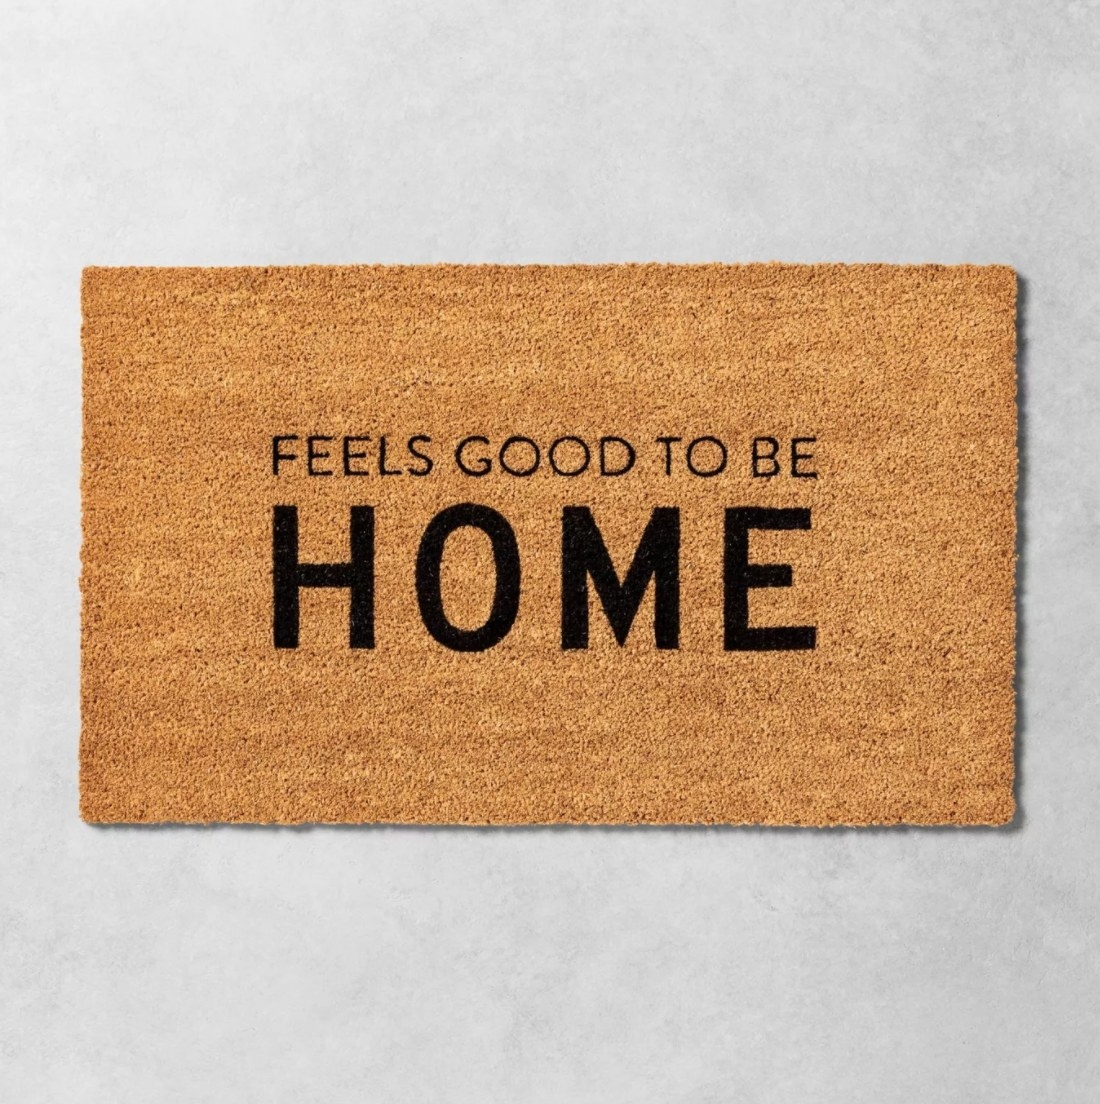 The tan welcome mat